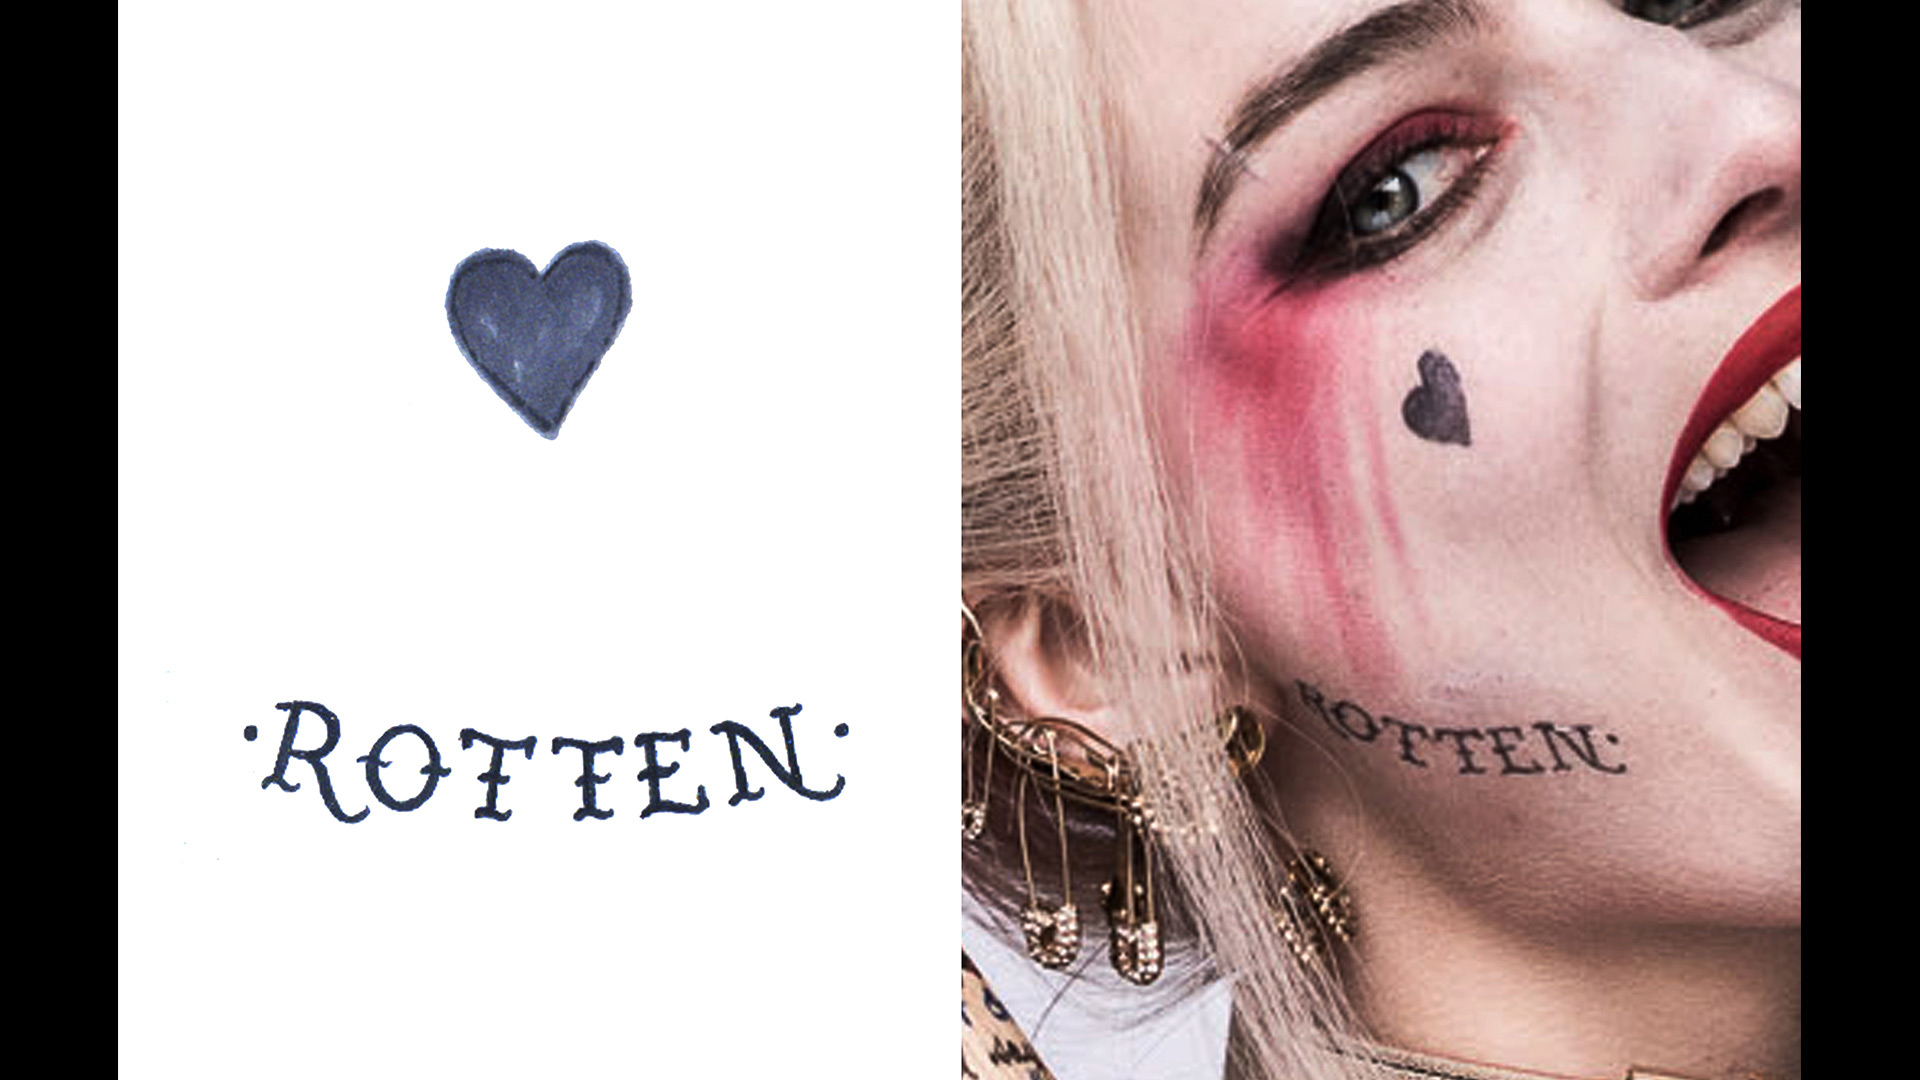 Rotten Tattoo: Get A Detailed Look At Margot Robbie's Harley Quinn